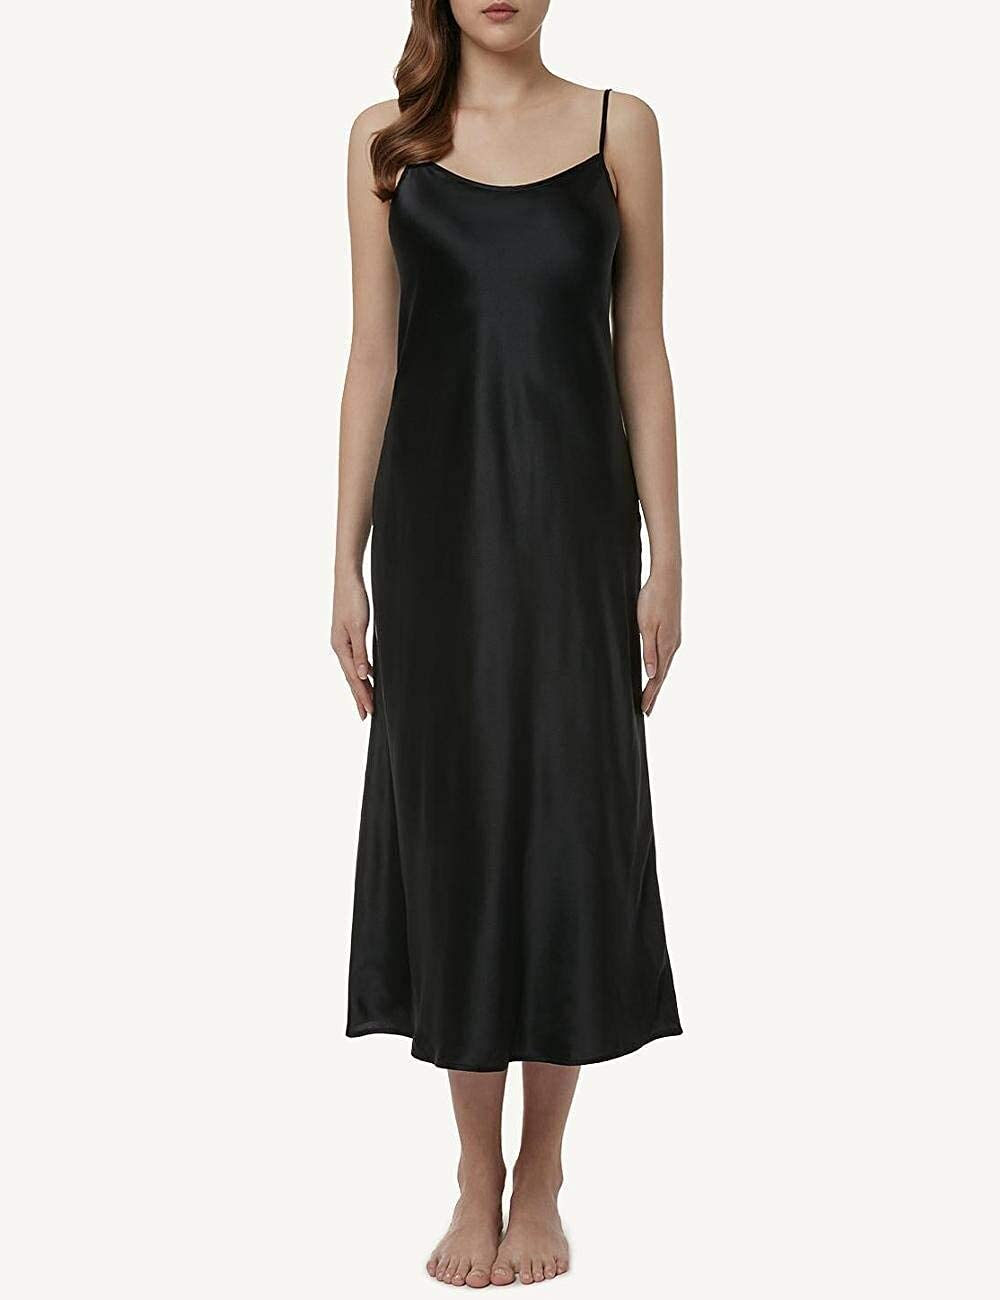 450337a6c592 Intimissimi Womens Midi-Length Slip in Silk: Amazon.co.uk: Clothing